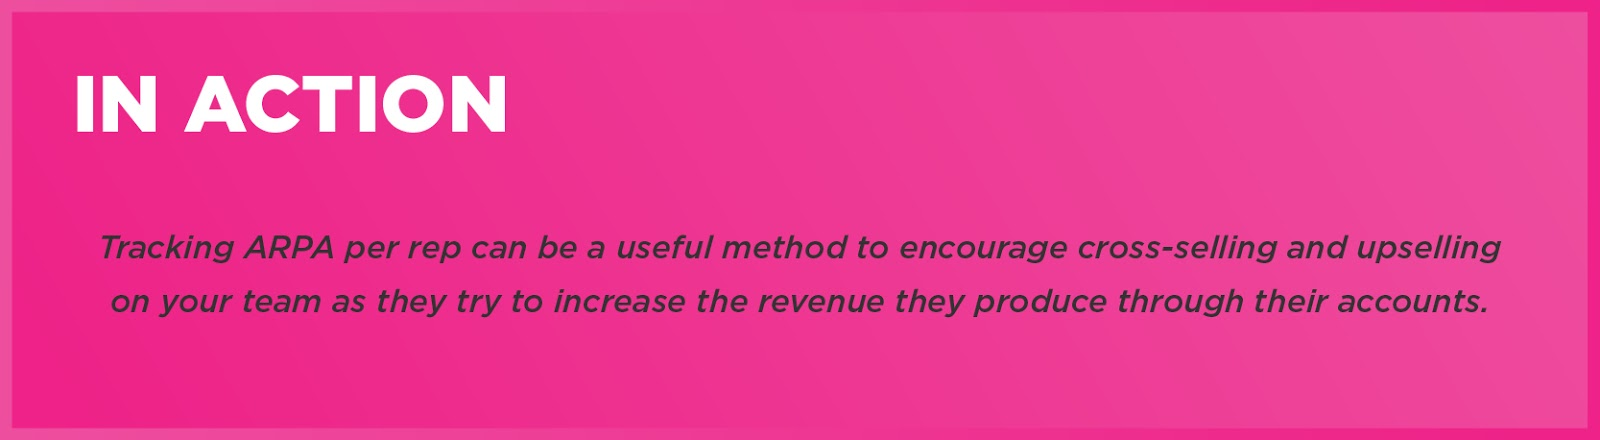 In Action: Tracking ARPA per rep can be a useful method to encourage cross-selling and upselling on your team as they try to increase the revenue they produce through their accounts.